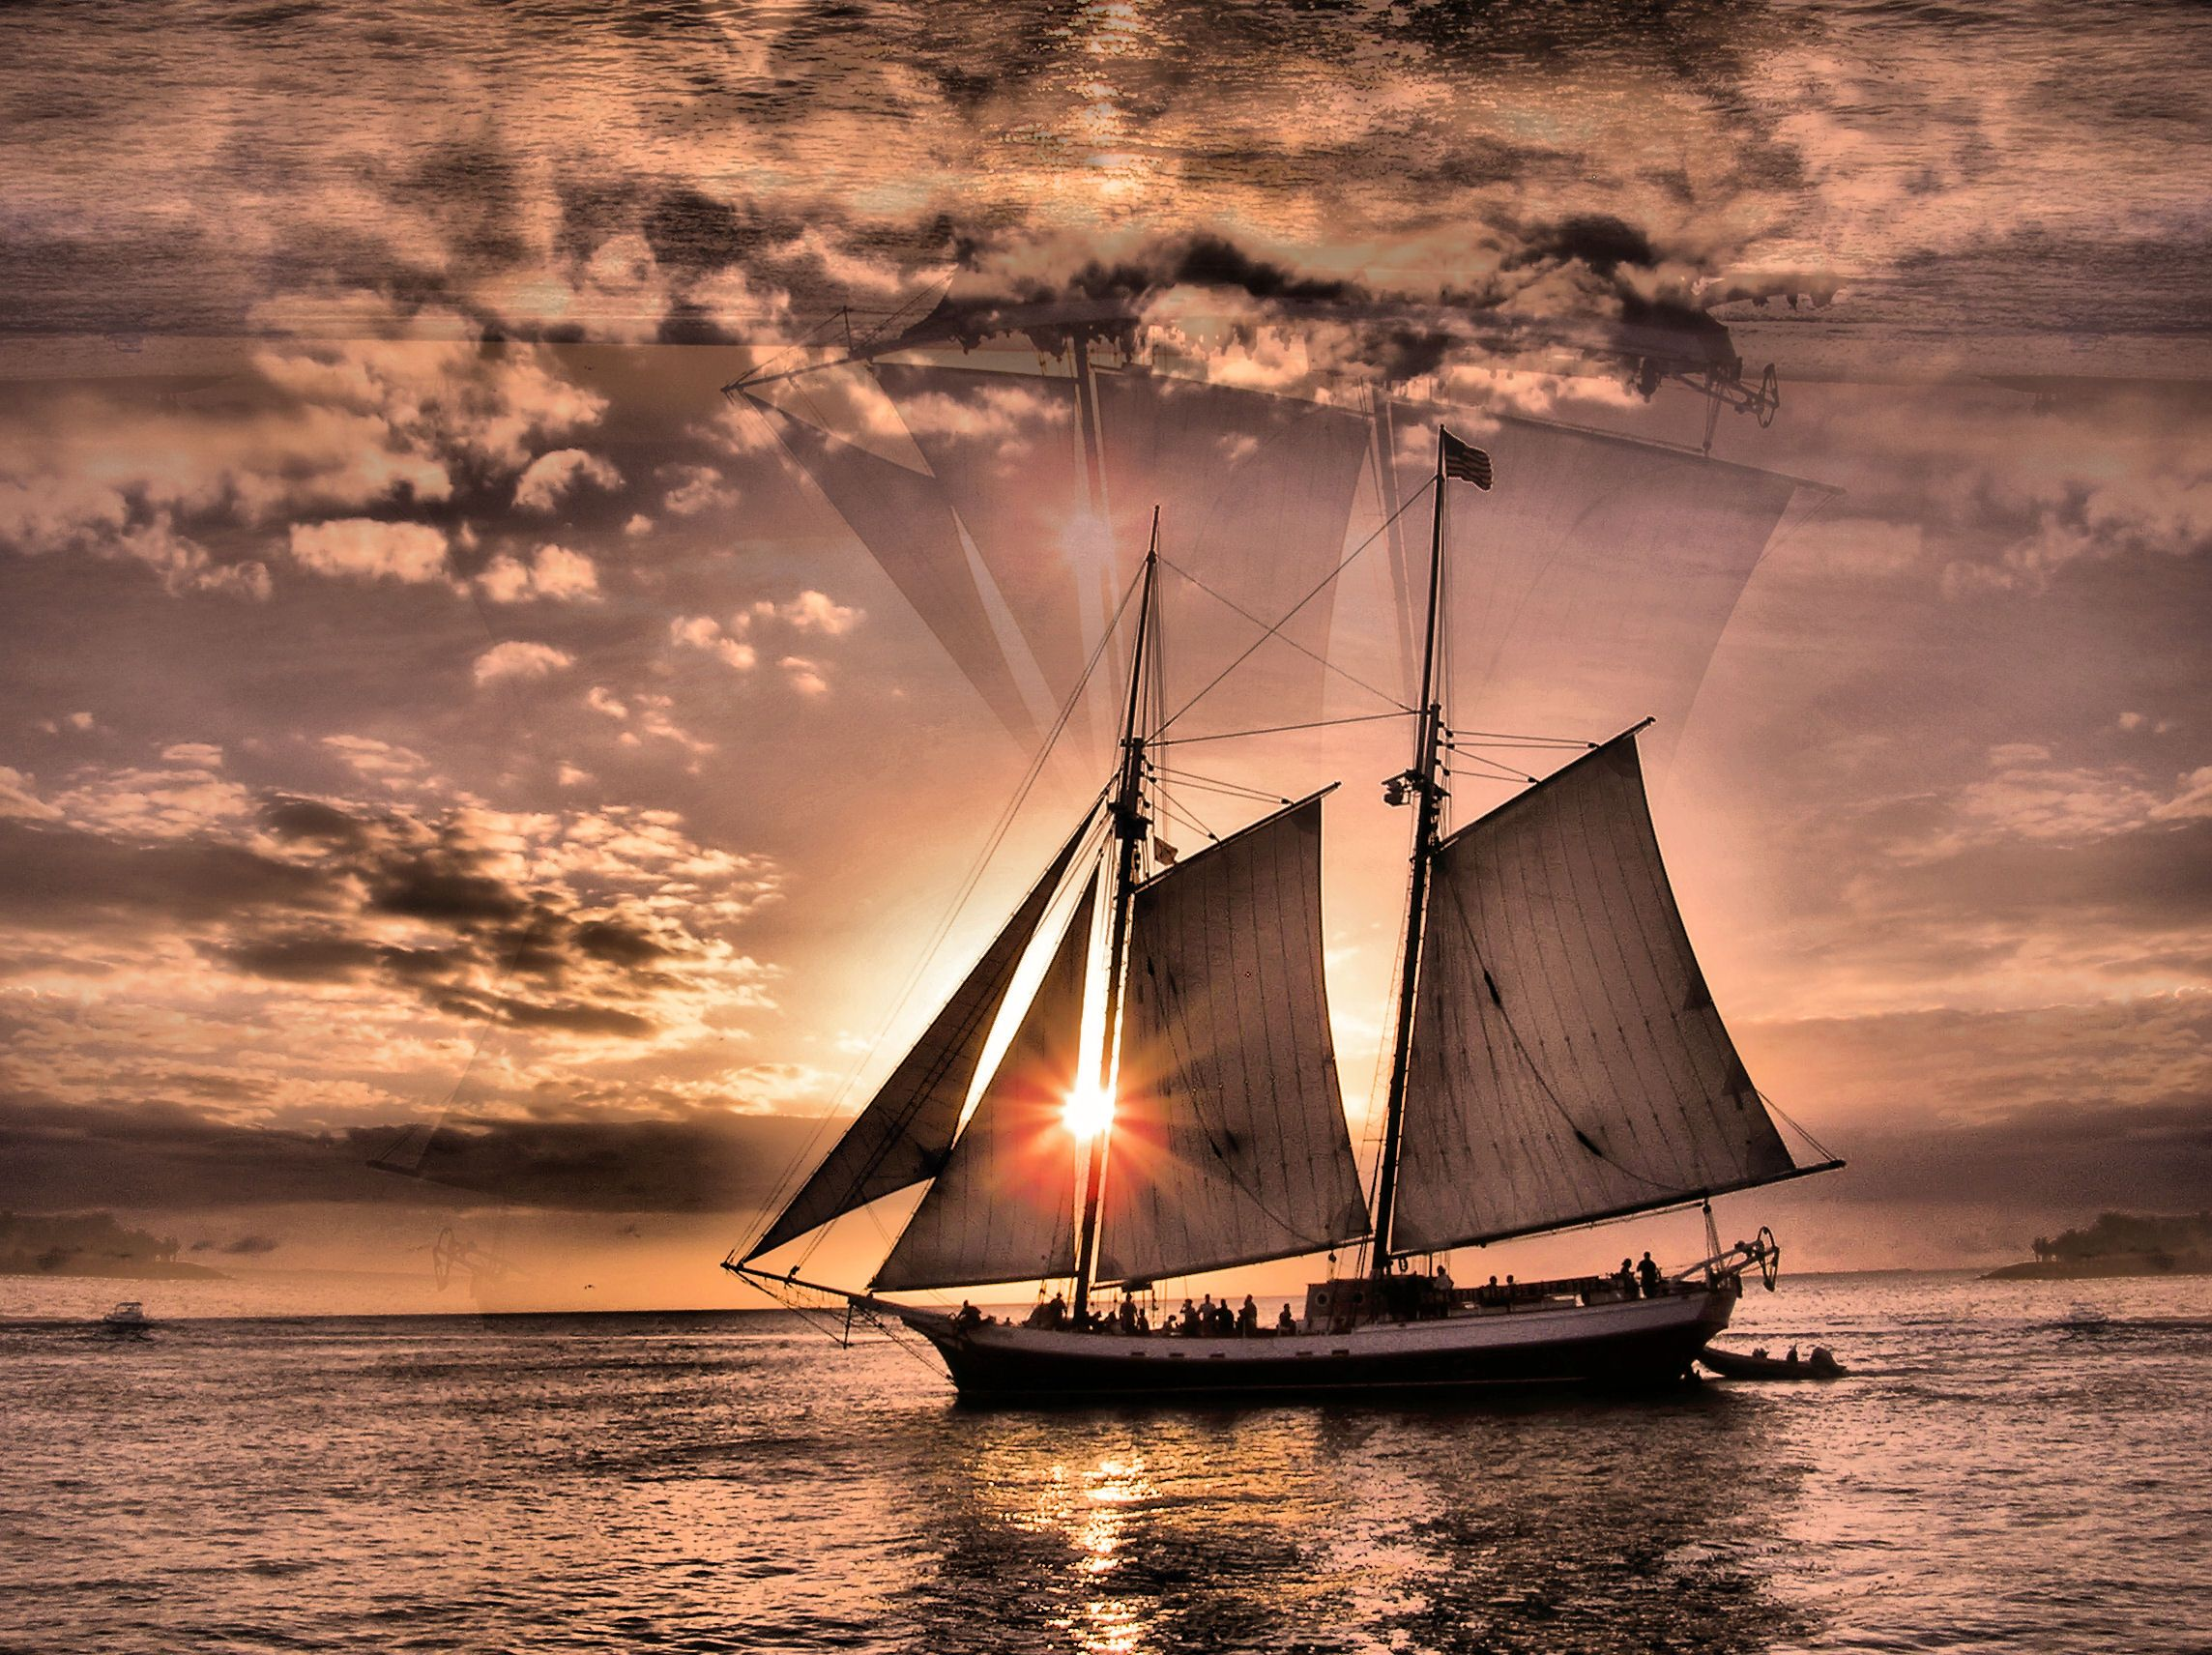 The Ship Has Come To Carry You Home Sailing Sailing Ships Boat Moon boat sunset sail evening lake